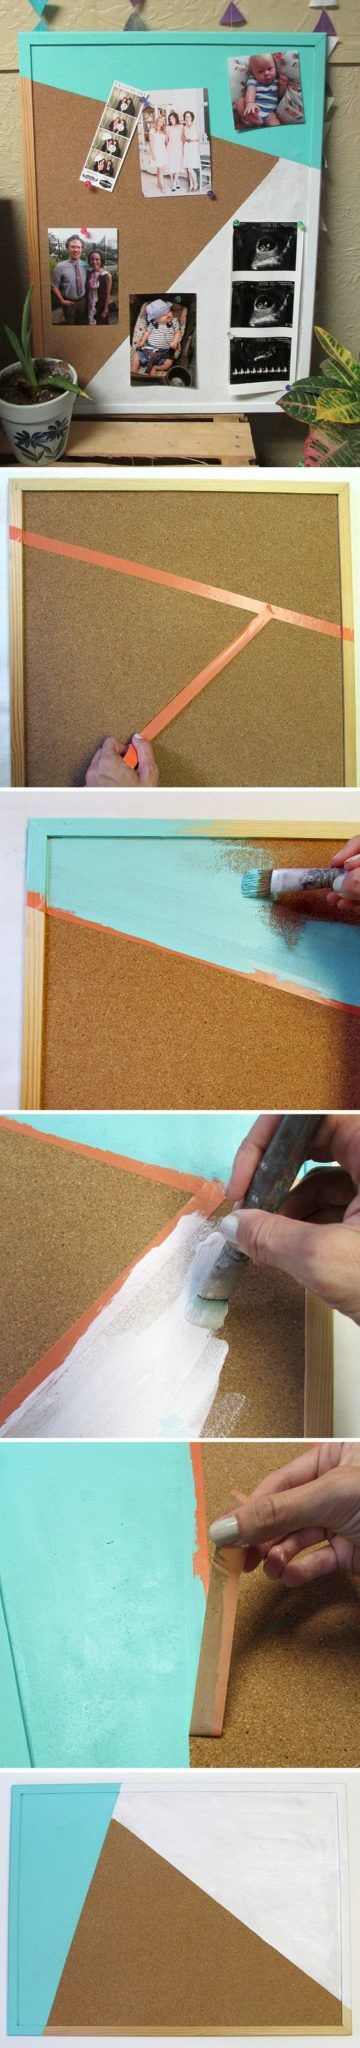 25 unique painting corkboard ideas on pinterest chevron cork boards cork boards and cork. Black Bedroom Furniture Sets. Home Design Ideas